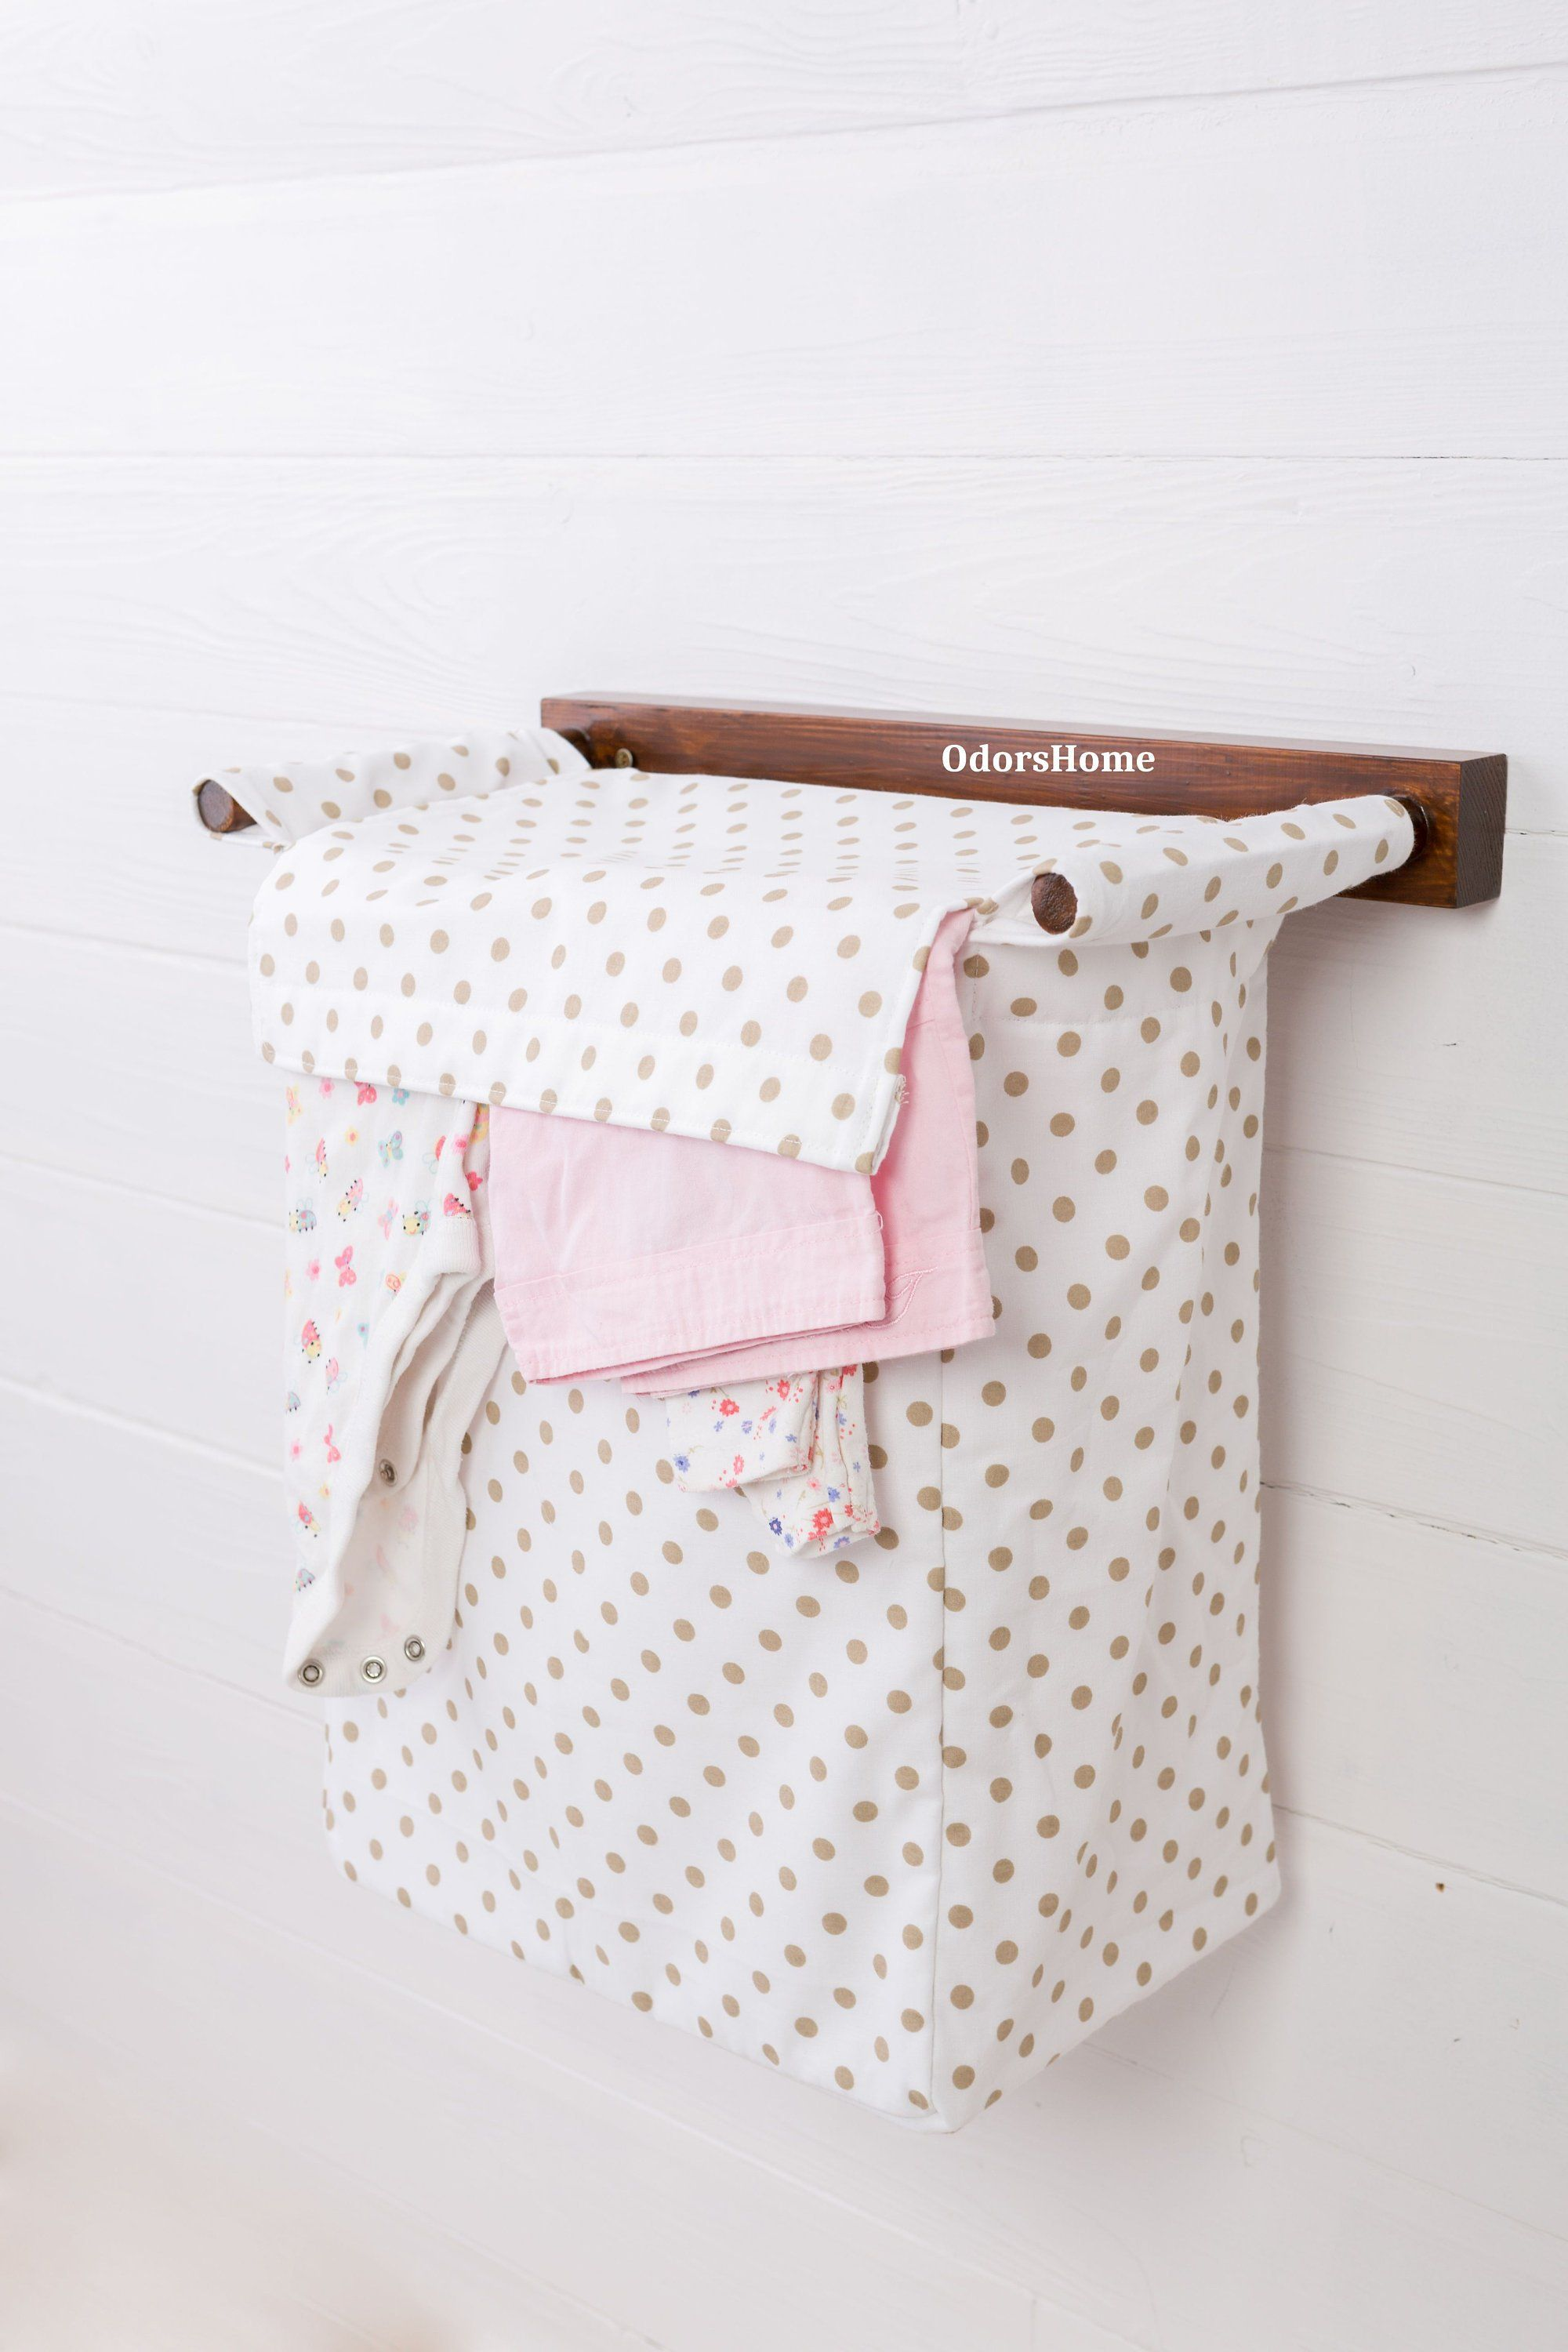 Looking For Baby Shower Gift Your Scandi Lover Mom Fallow This Horizontal Organizer Saves